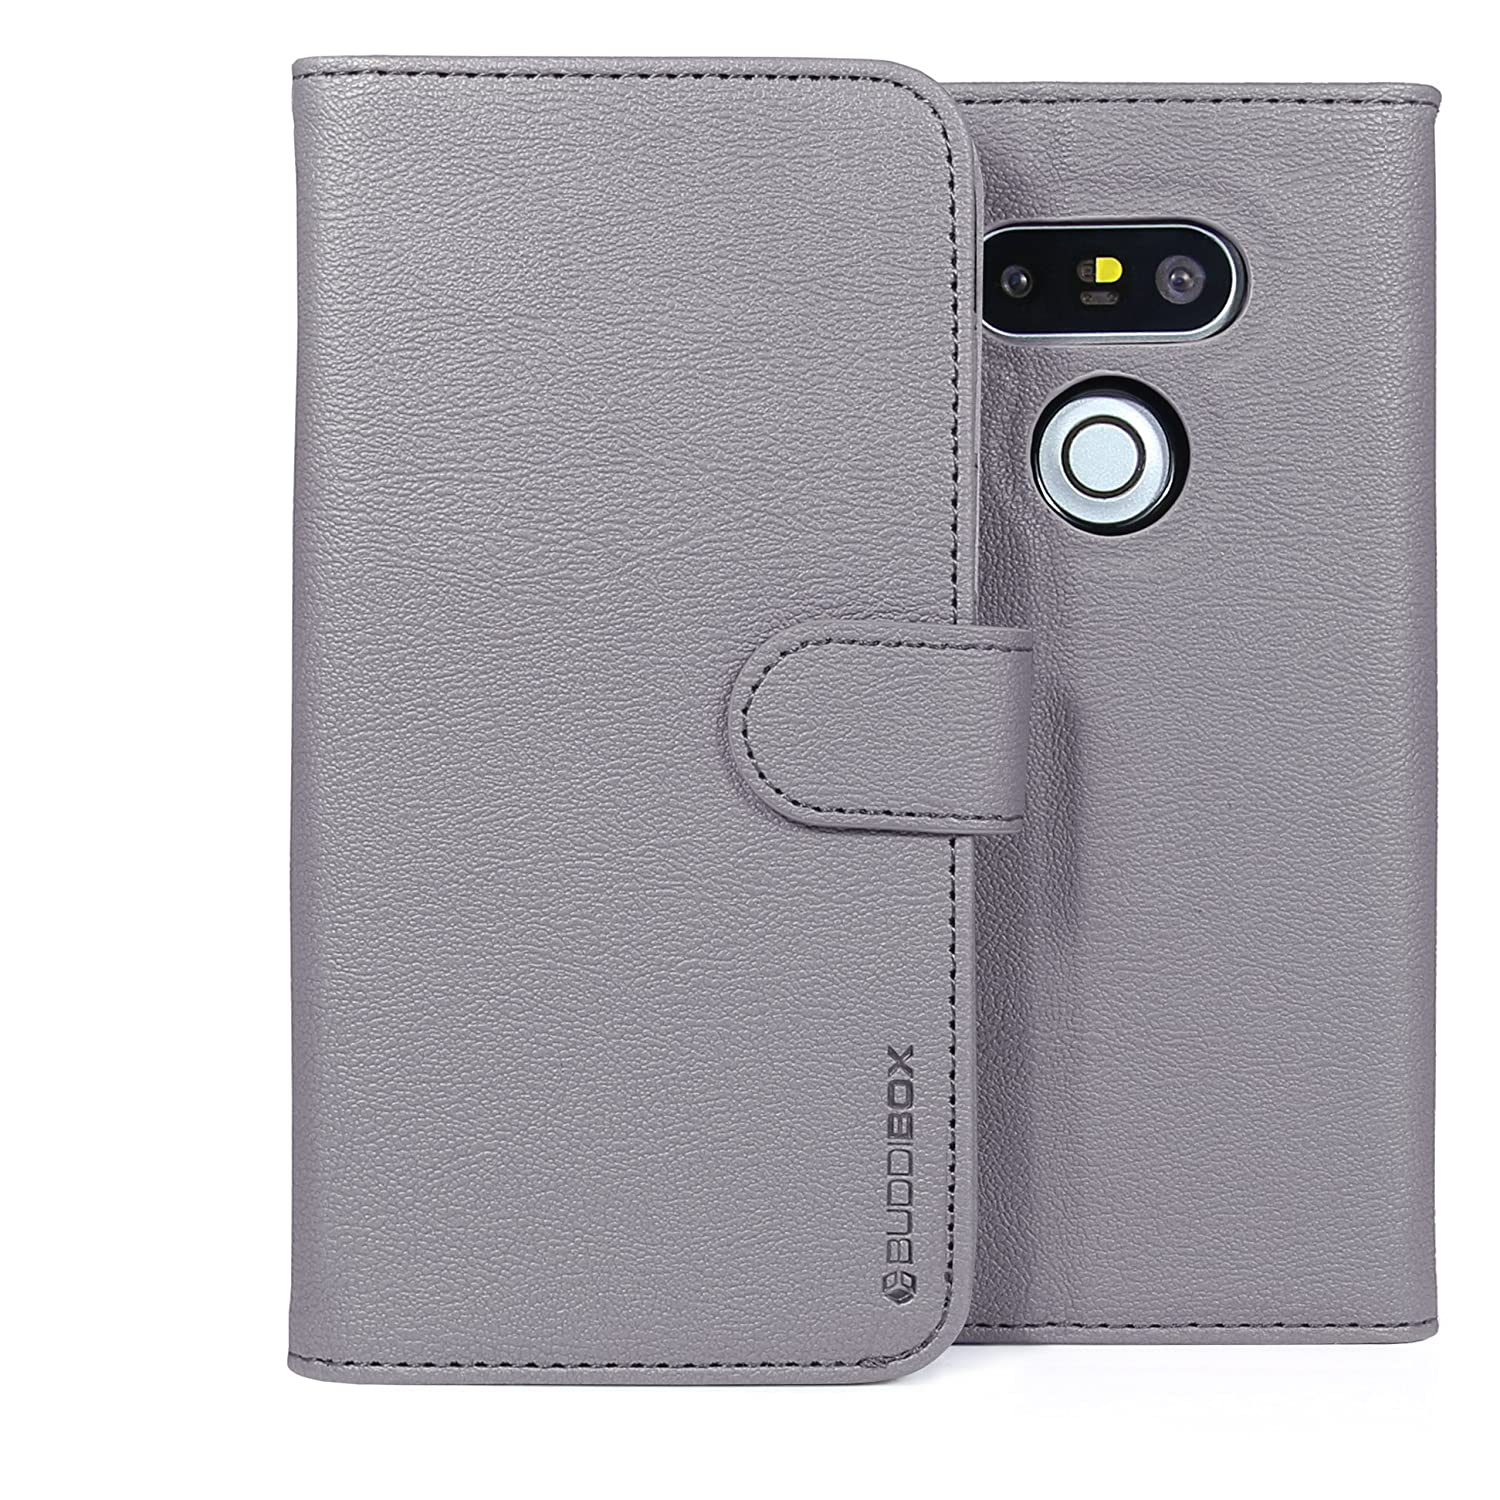 Amazon.com: LG G5 Monedero casos, buddibox, gris: Cell ...